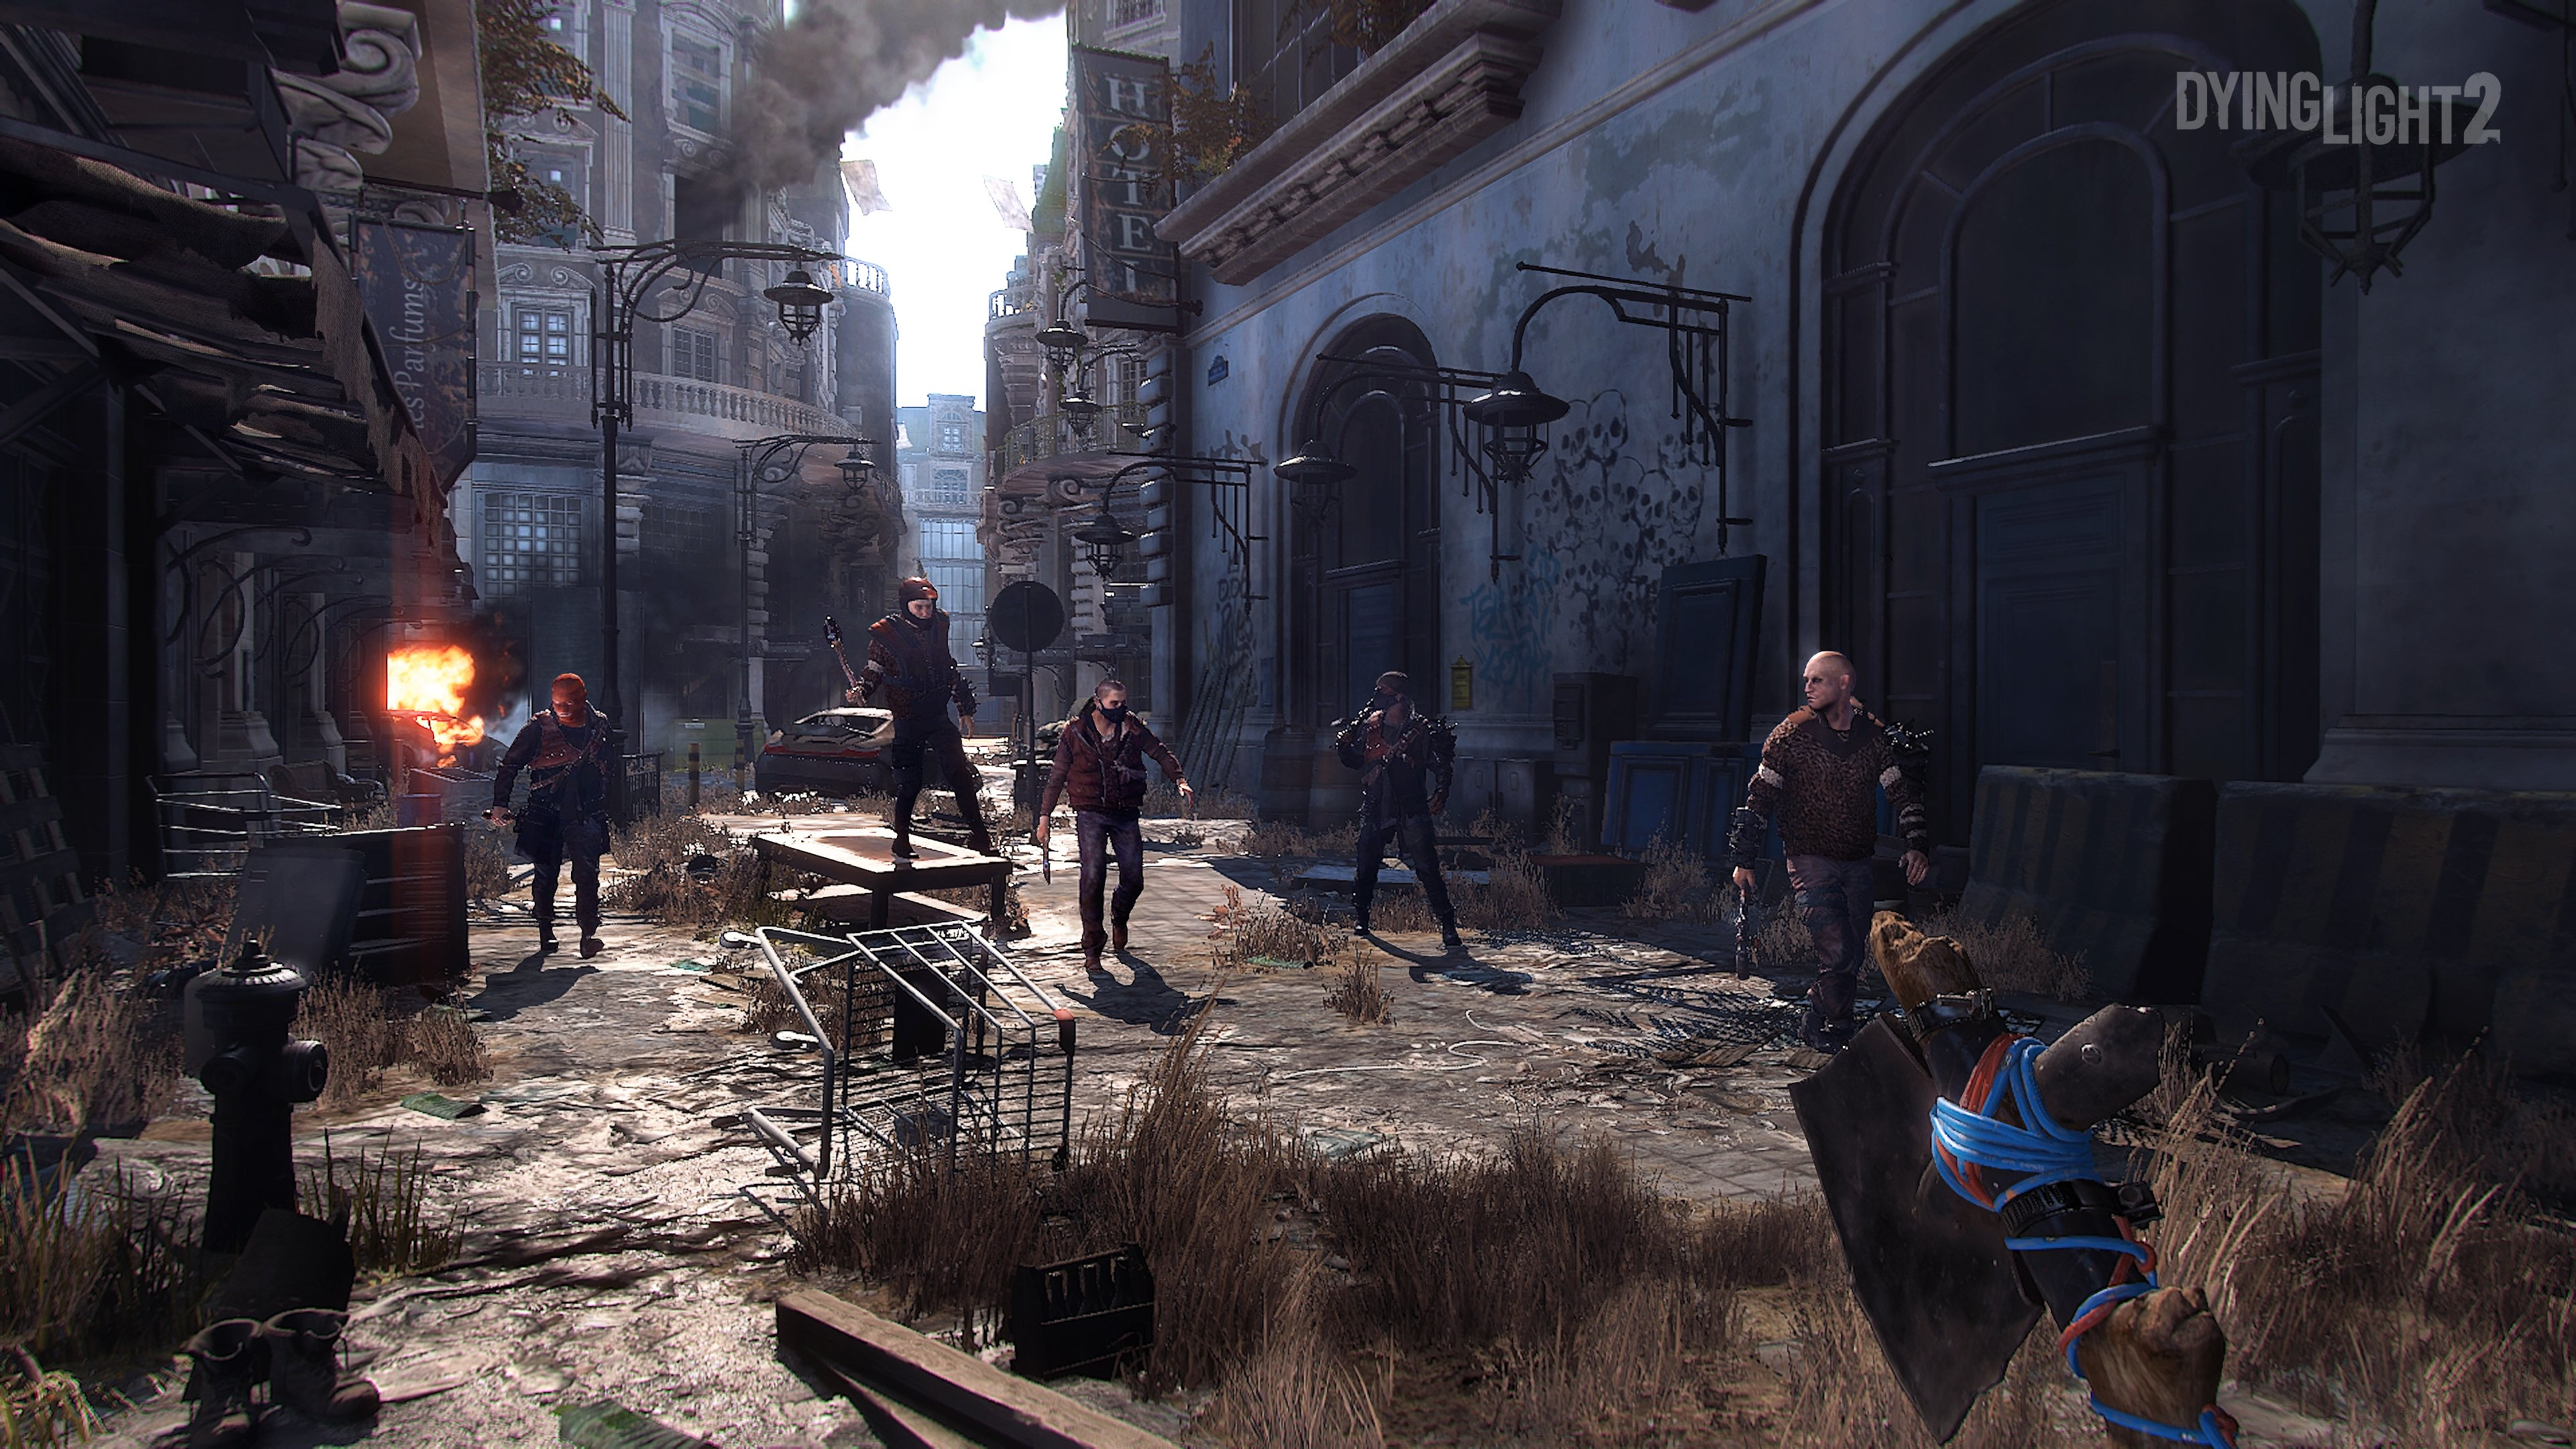 Dying Light 2 voyous